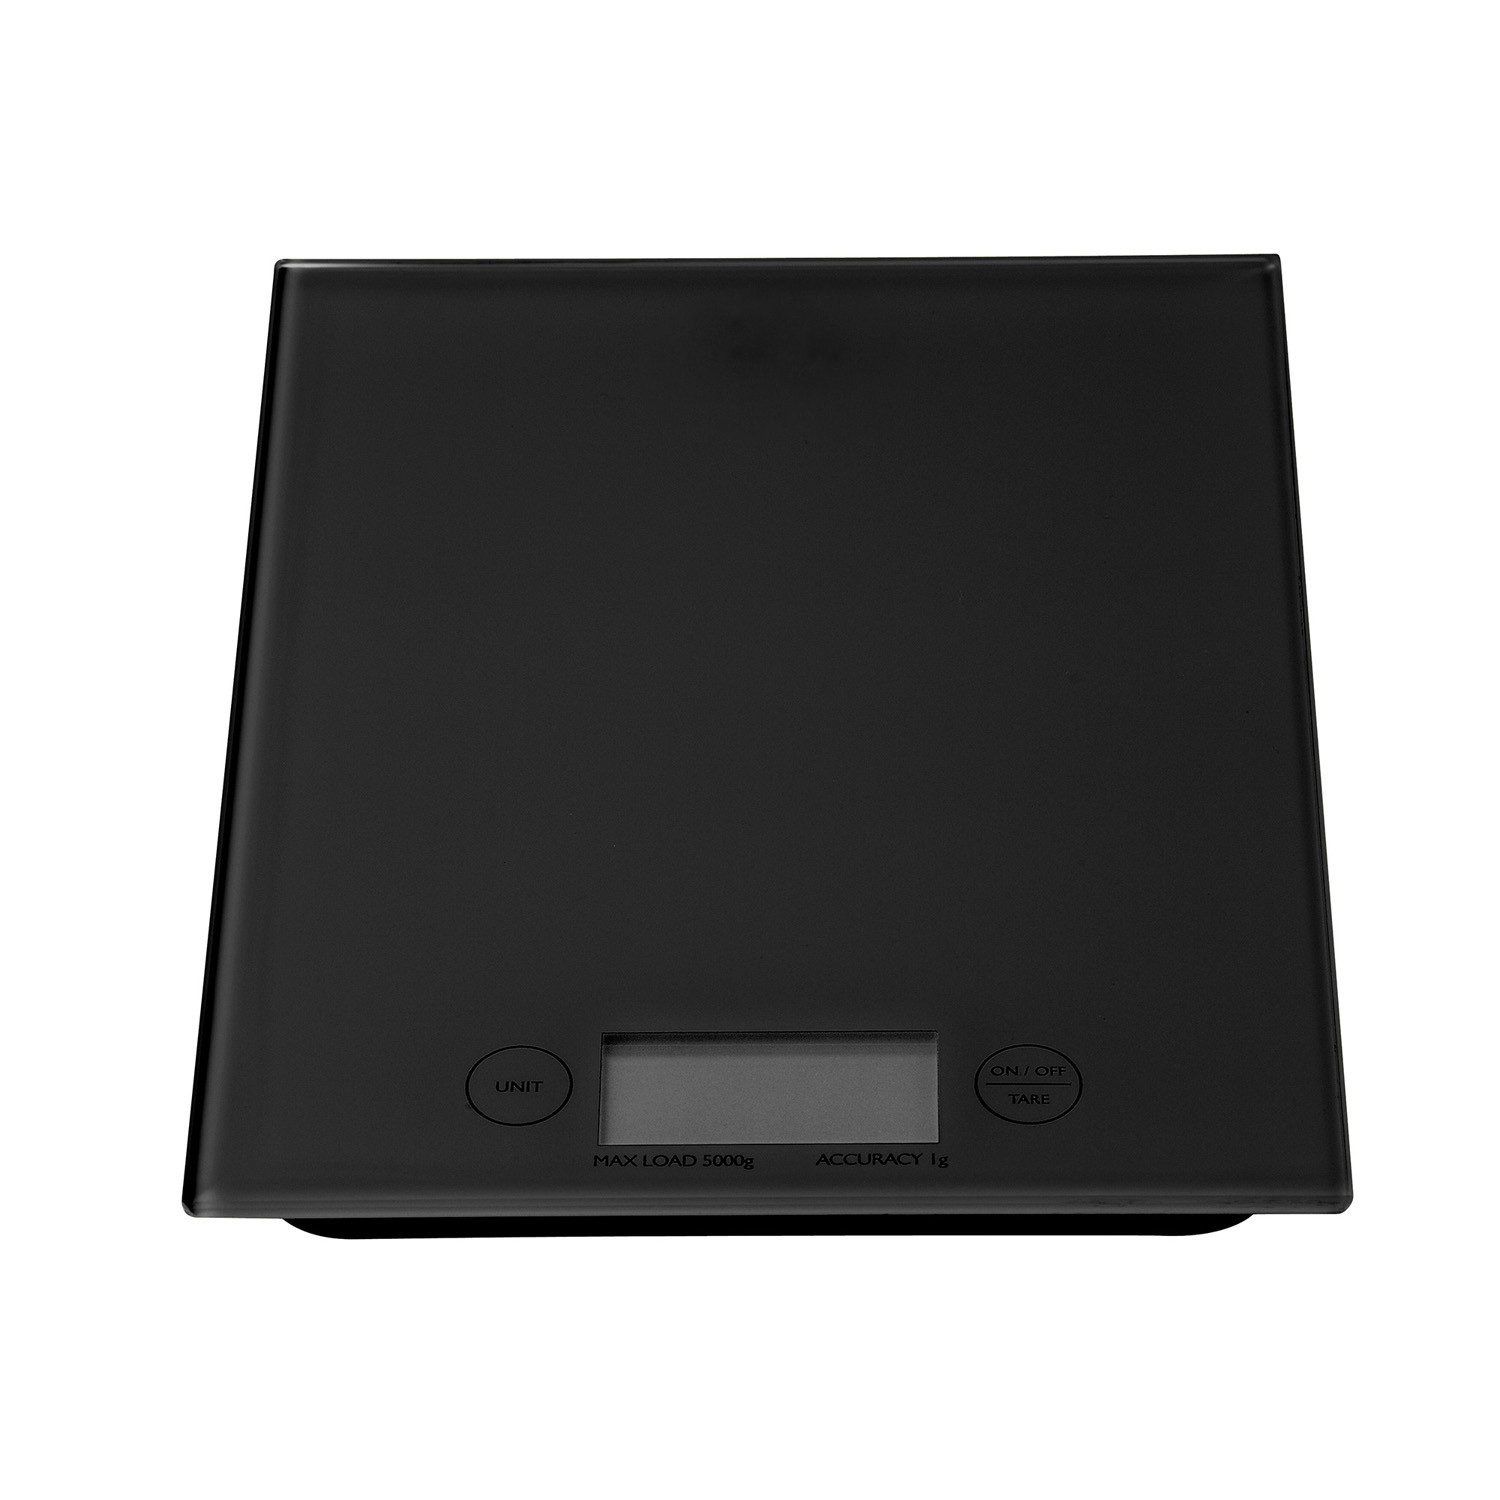 Amazon hot food kitchen scale Stainless Steel Platform 11lb 5kg Digital Kitchen Scale